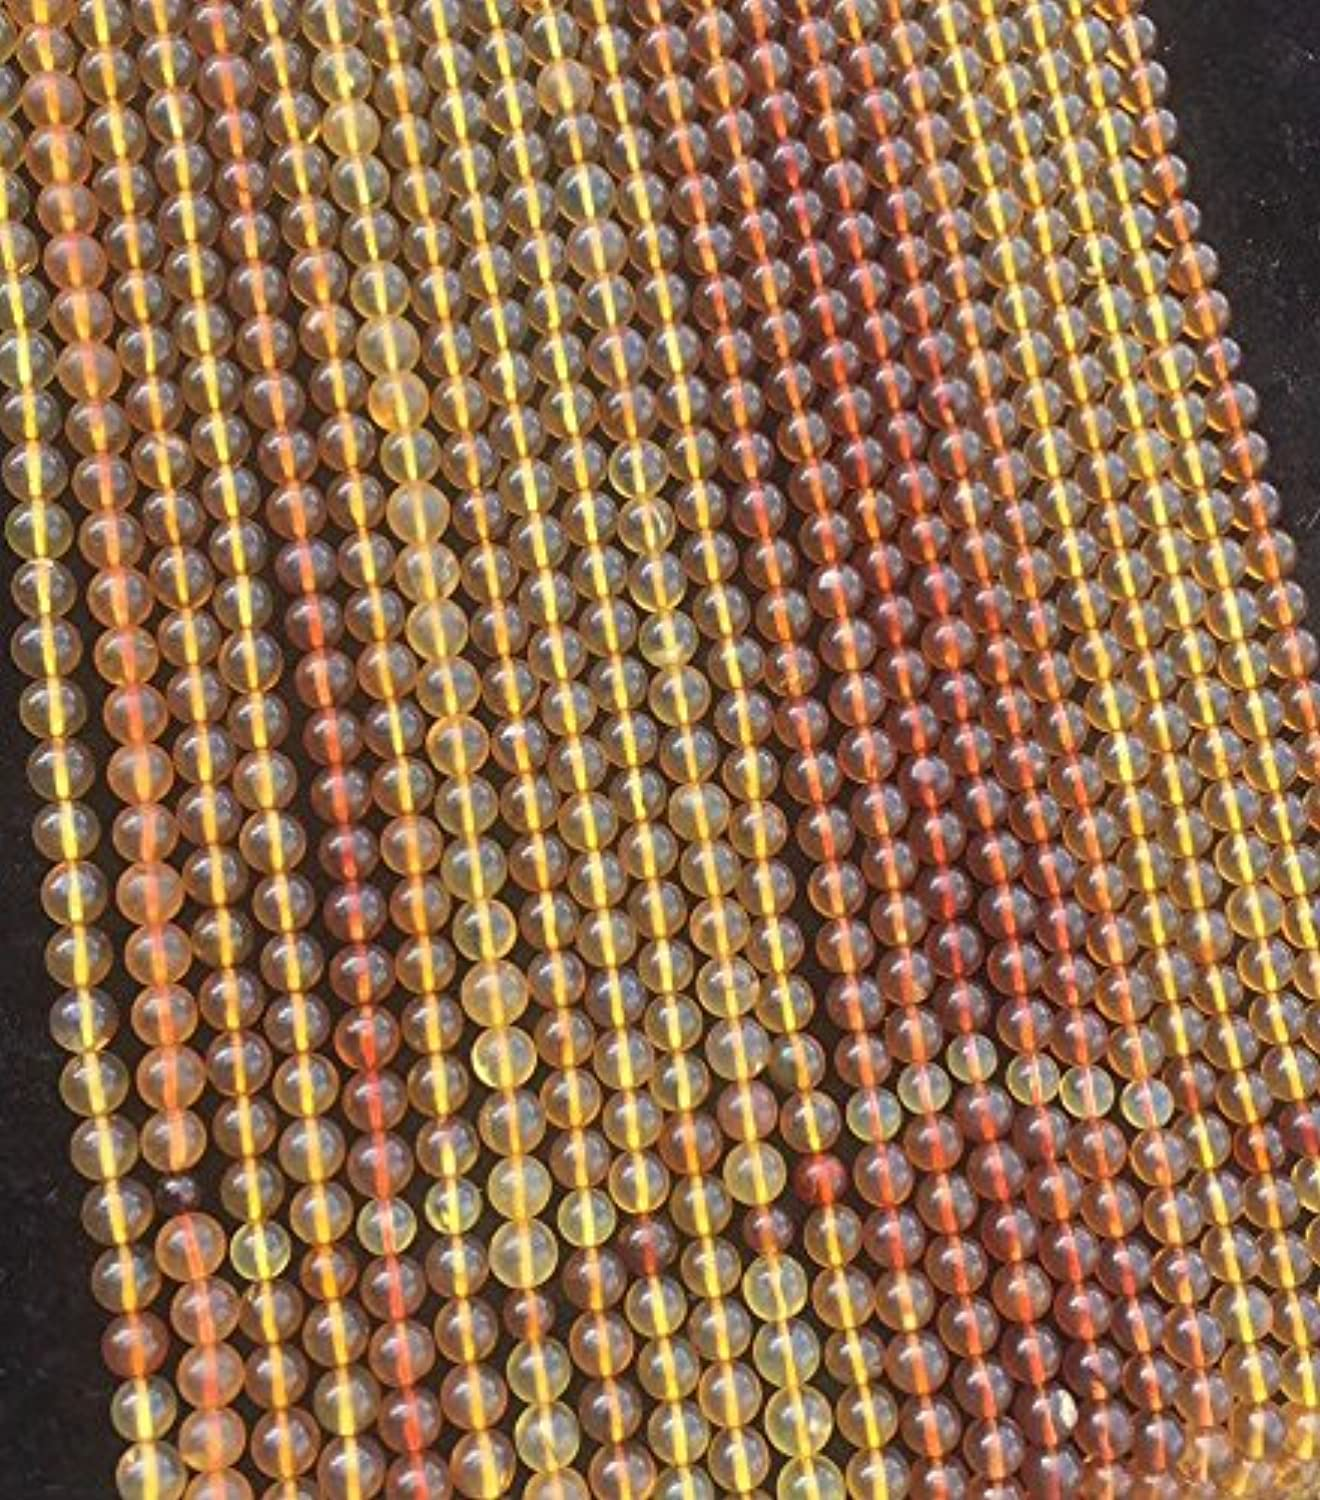 Burmite golden Brown Reddish Brown Bracelets Old Material 108 Beads Long Necklace Pendant Men Jewelry Bracelets